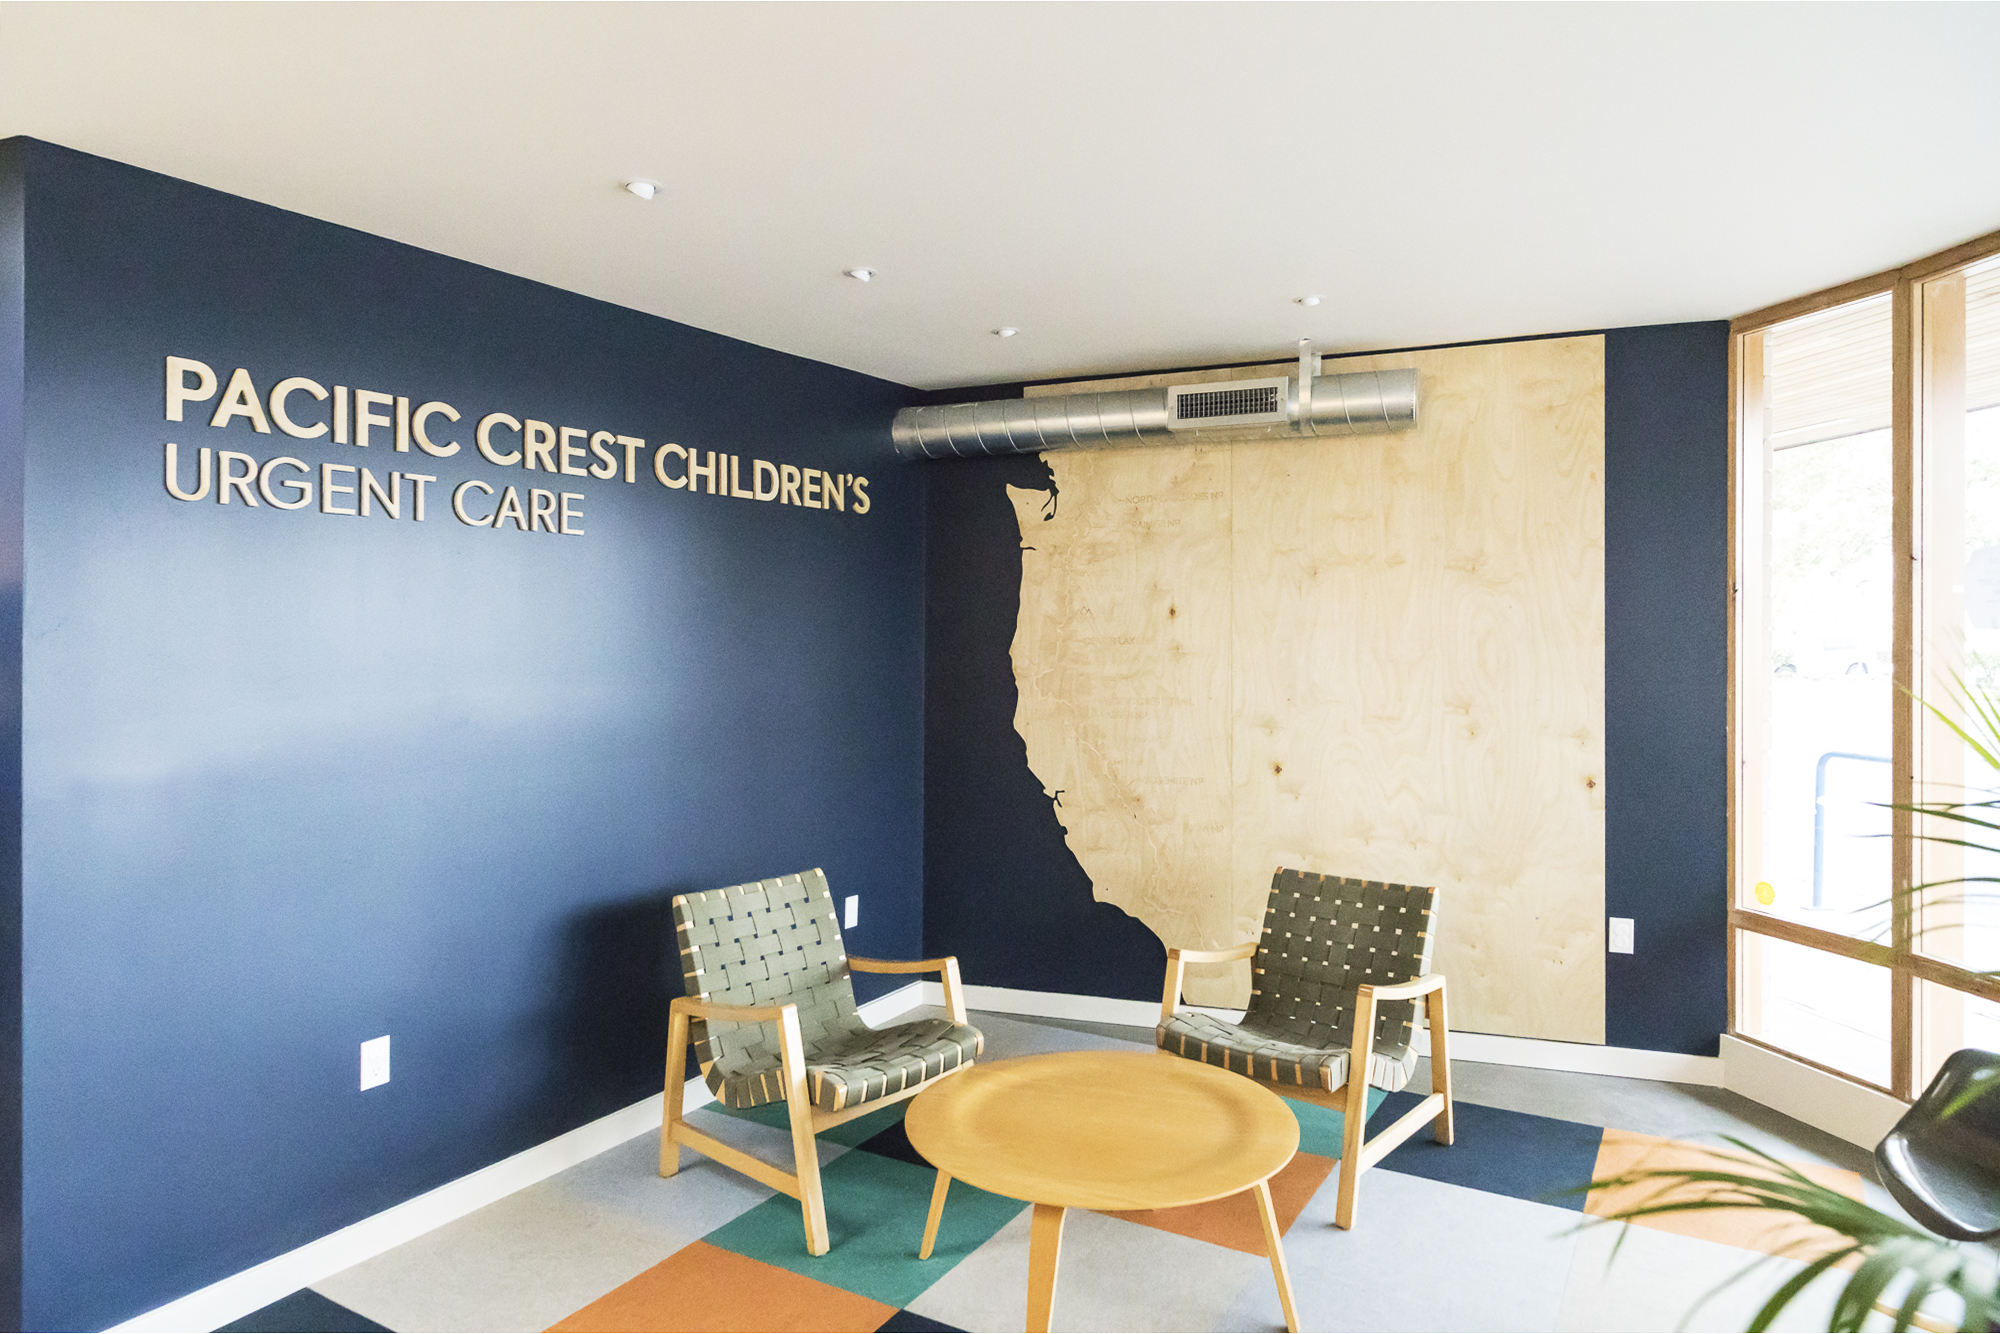 The waiting room Pacific Crest Trail wall graphic engages children to explore the trail from Canada to Mexico.